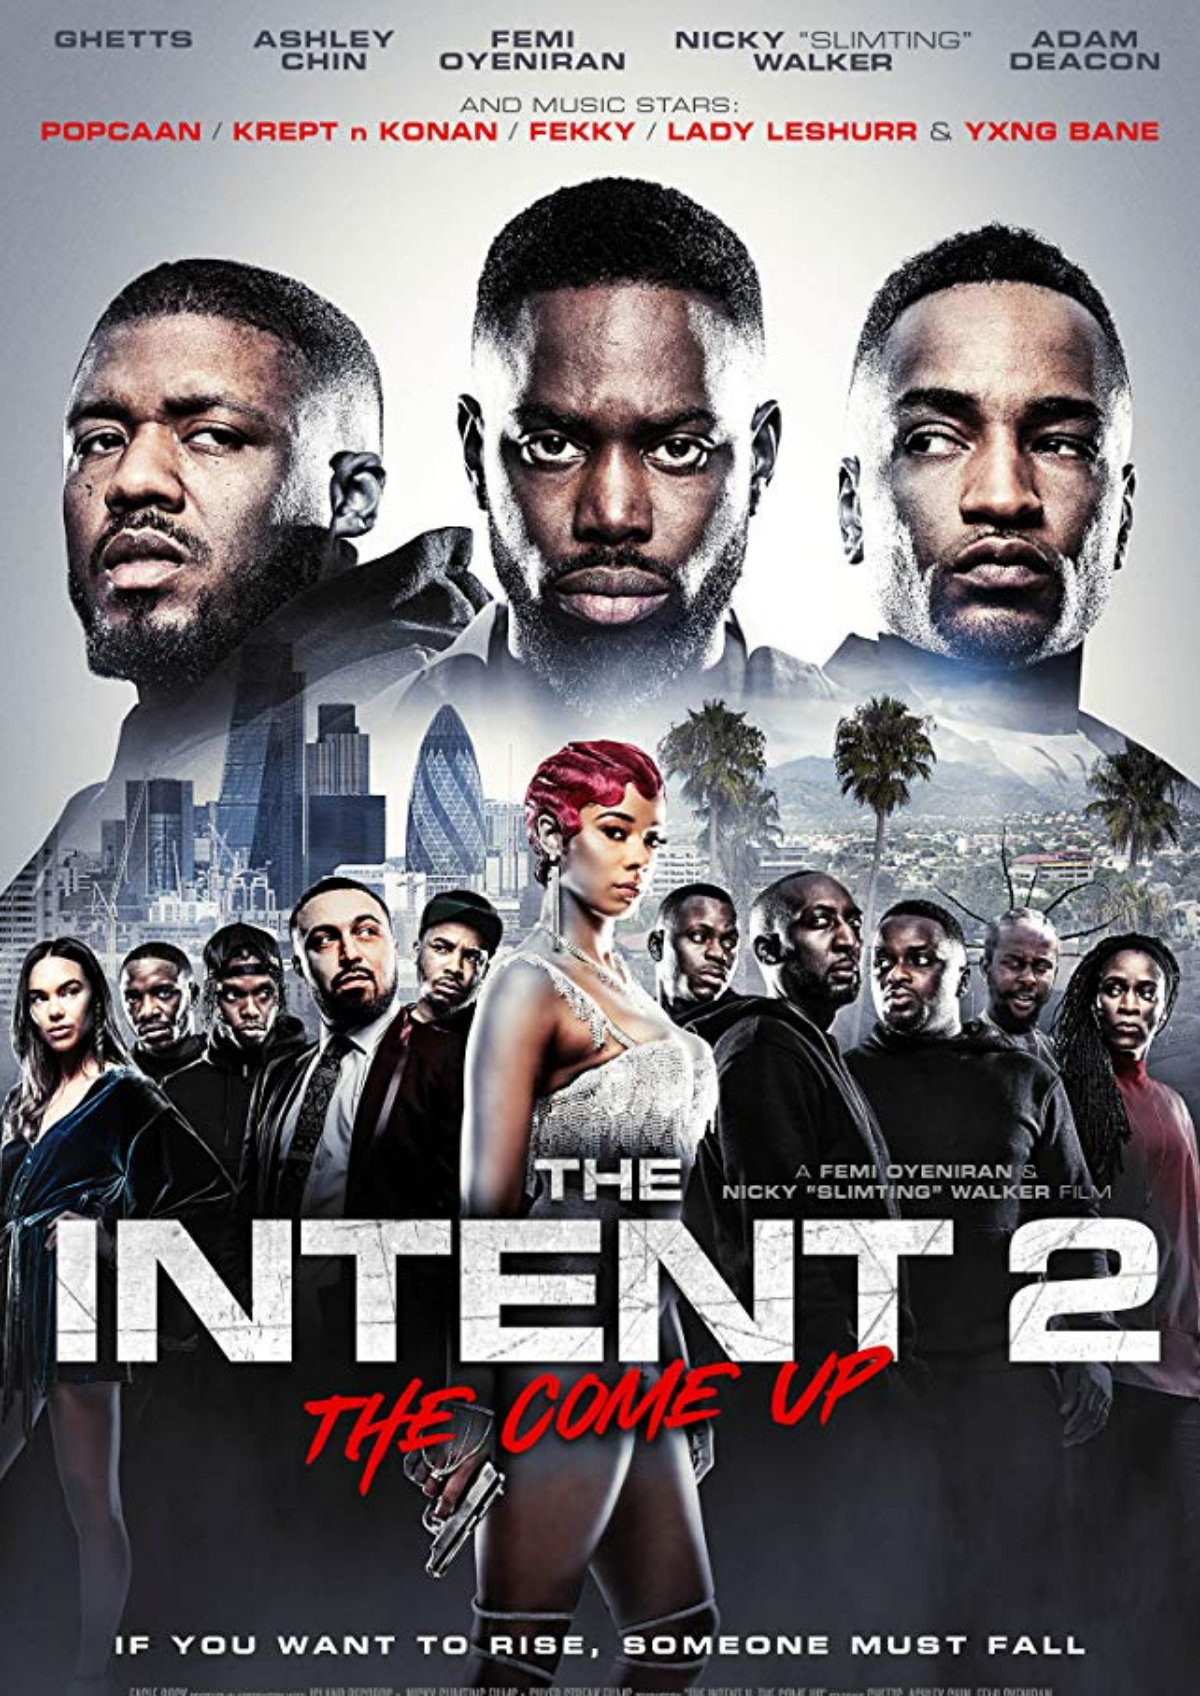 'The Intent 2: The Come Up' movie poster